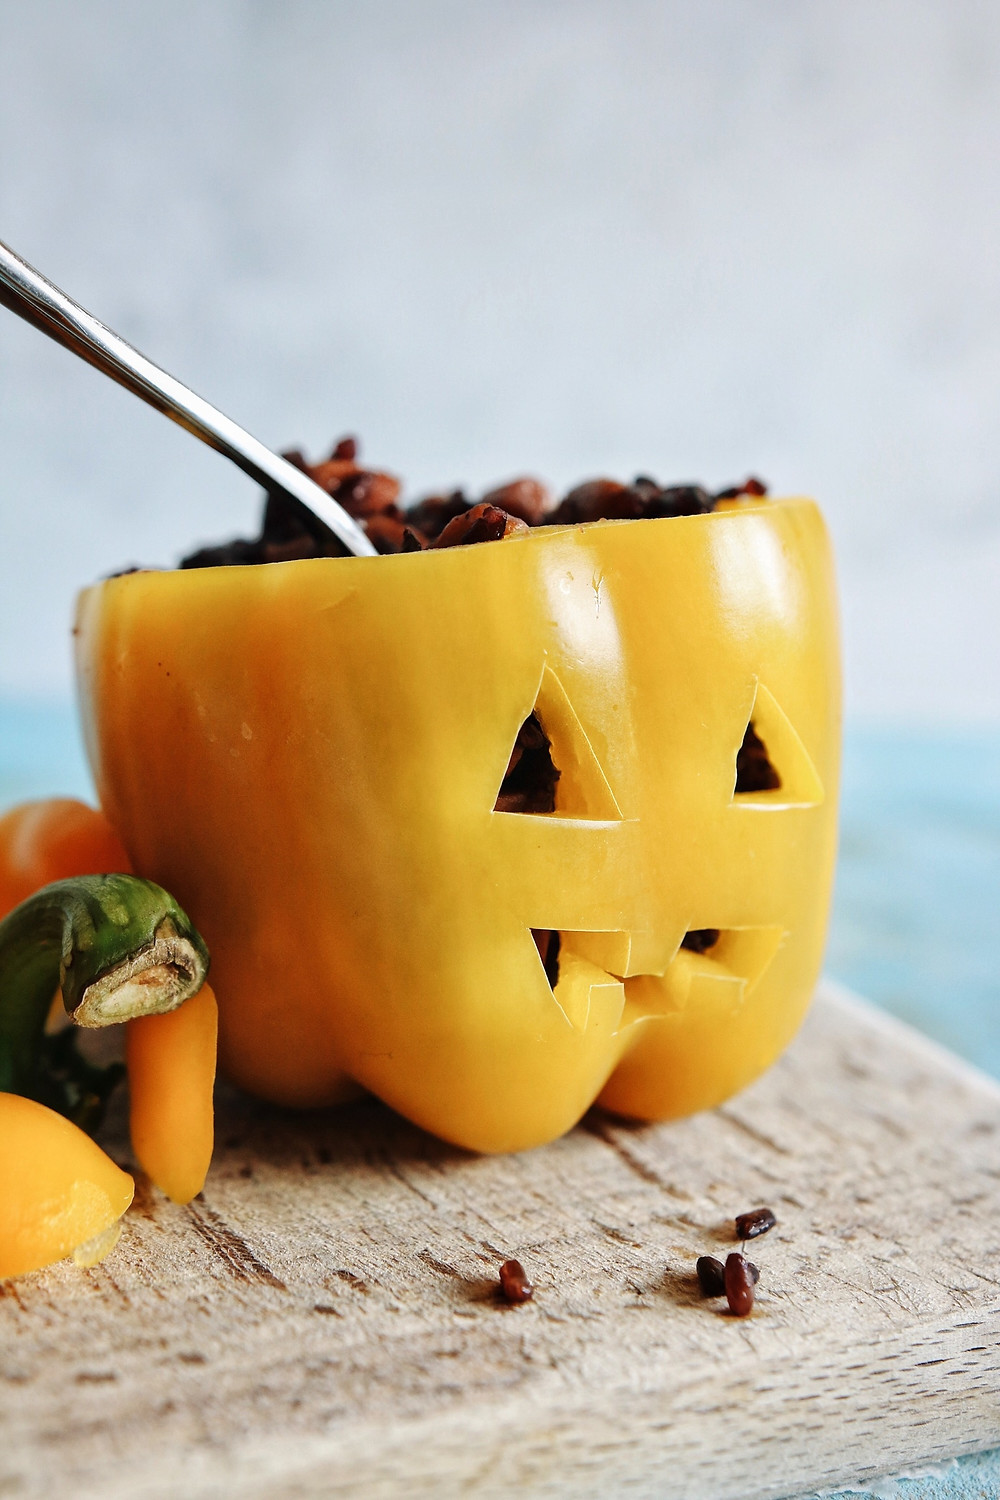 A yellow bell pepper carved like a jack o lantern and stuffed with a black risotto.